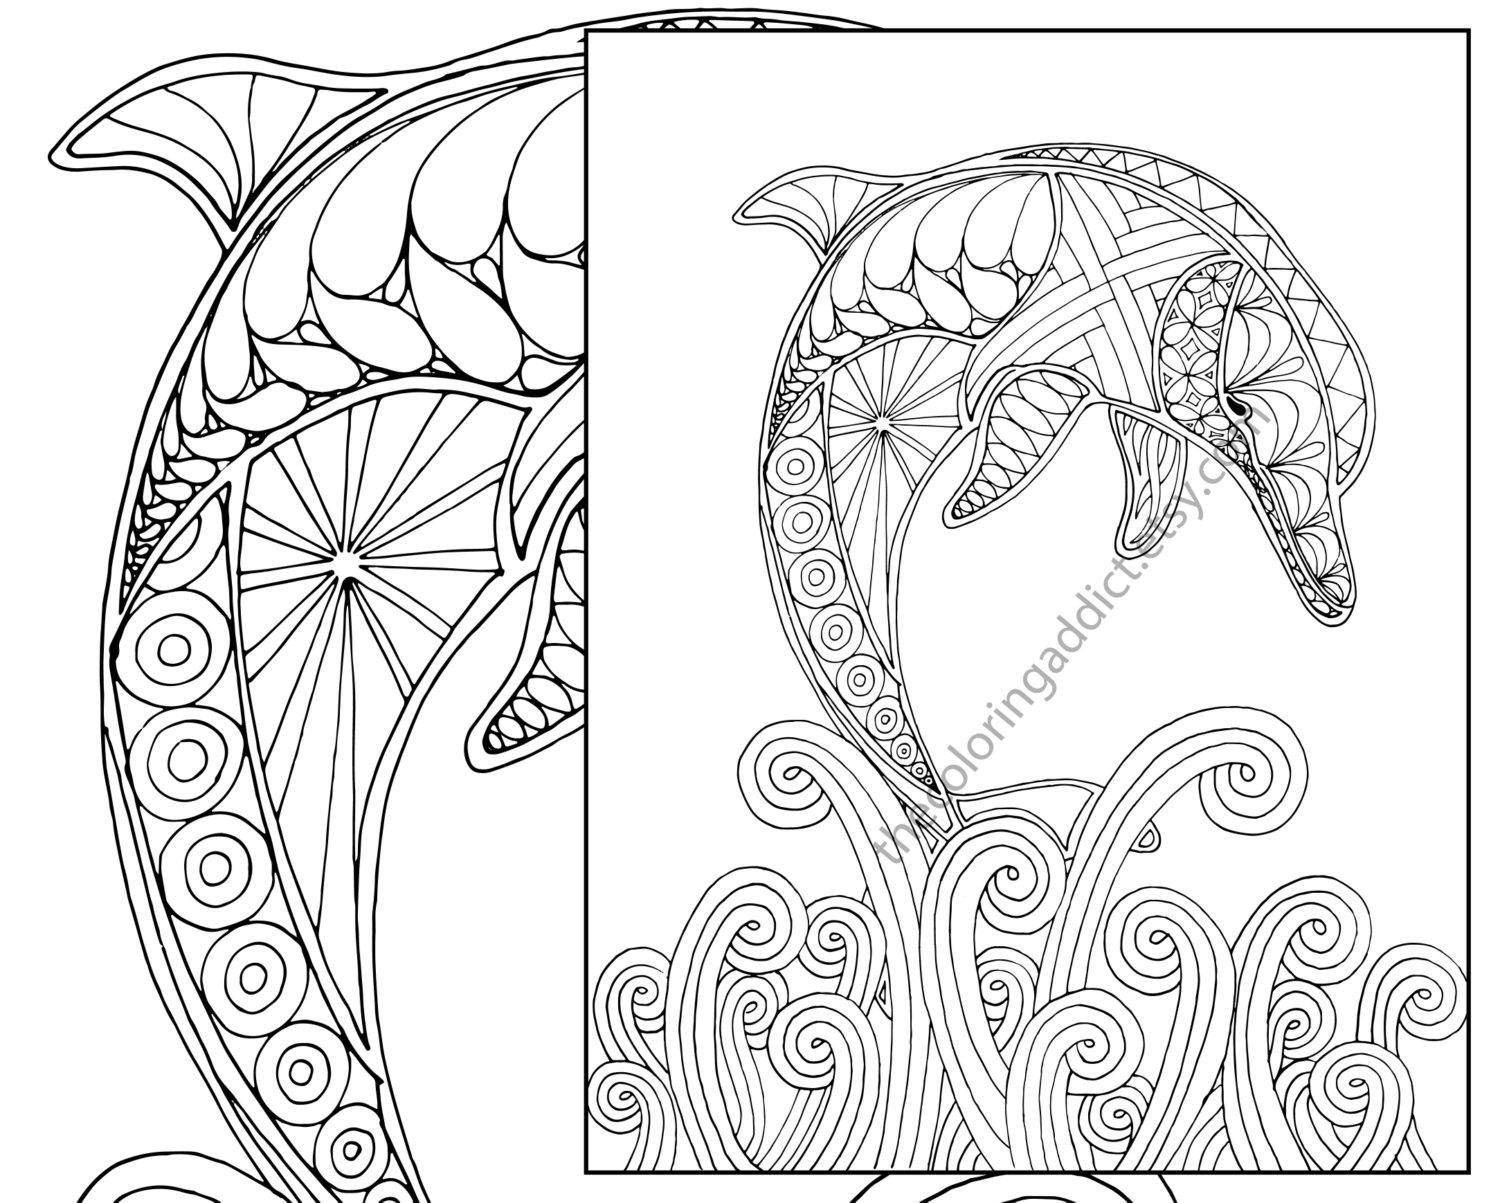 Dolphin Coloring Pages For Adults At Getdrawings Com Free For